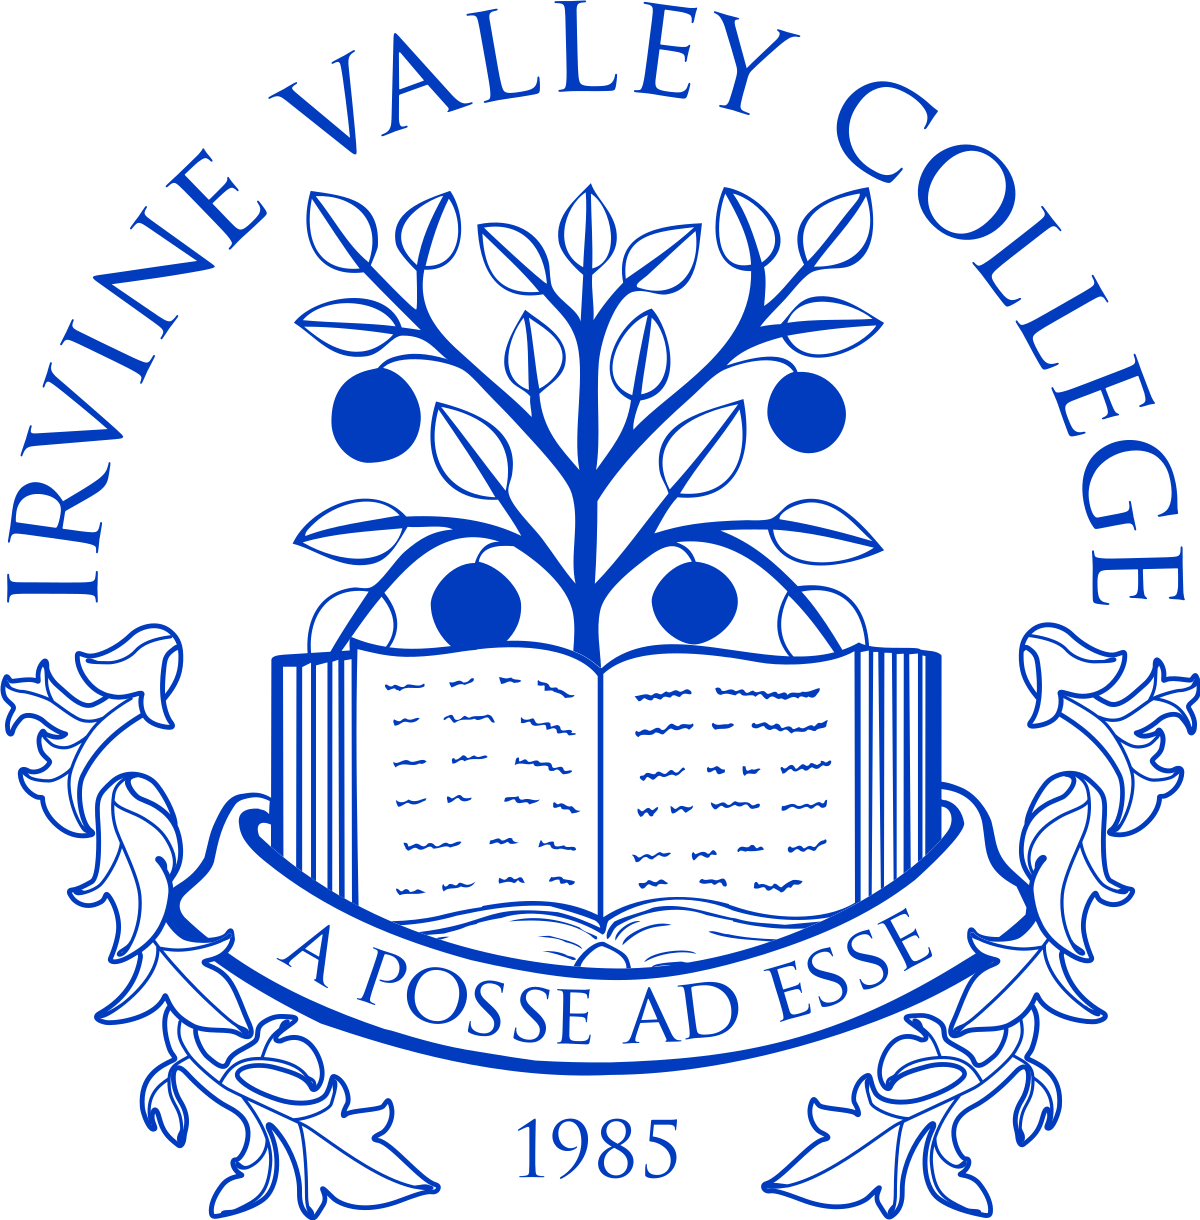 Irvine Valley College - 30 Best Community Colleges in California 2020